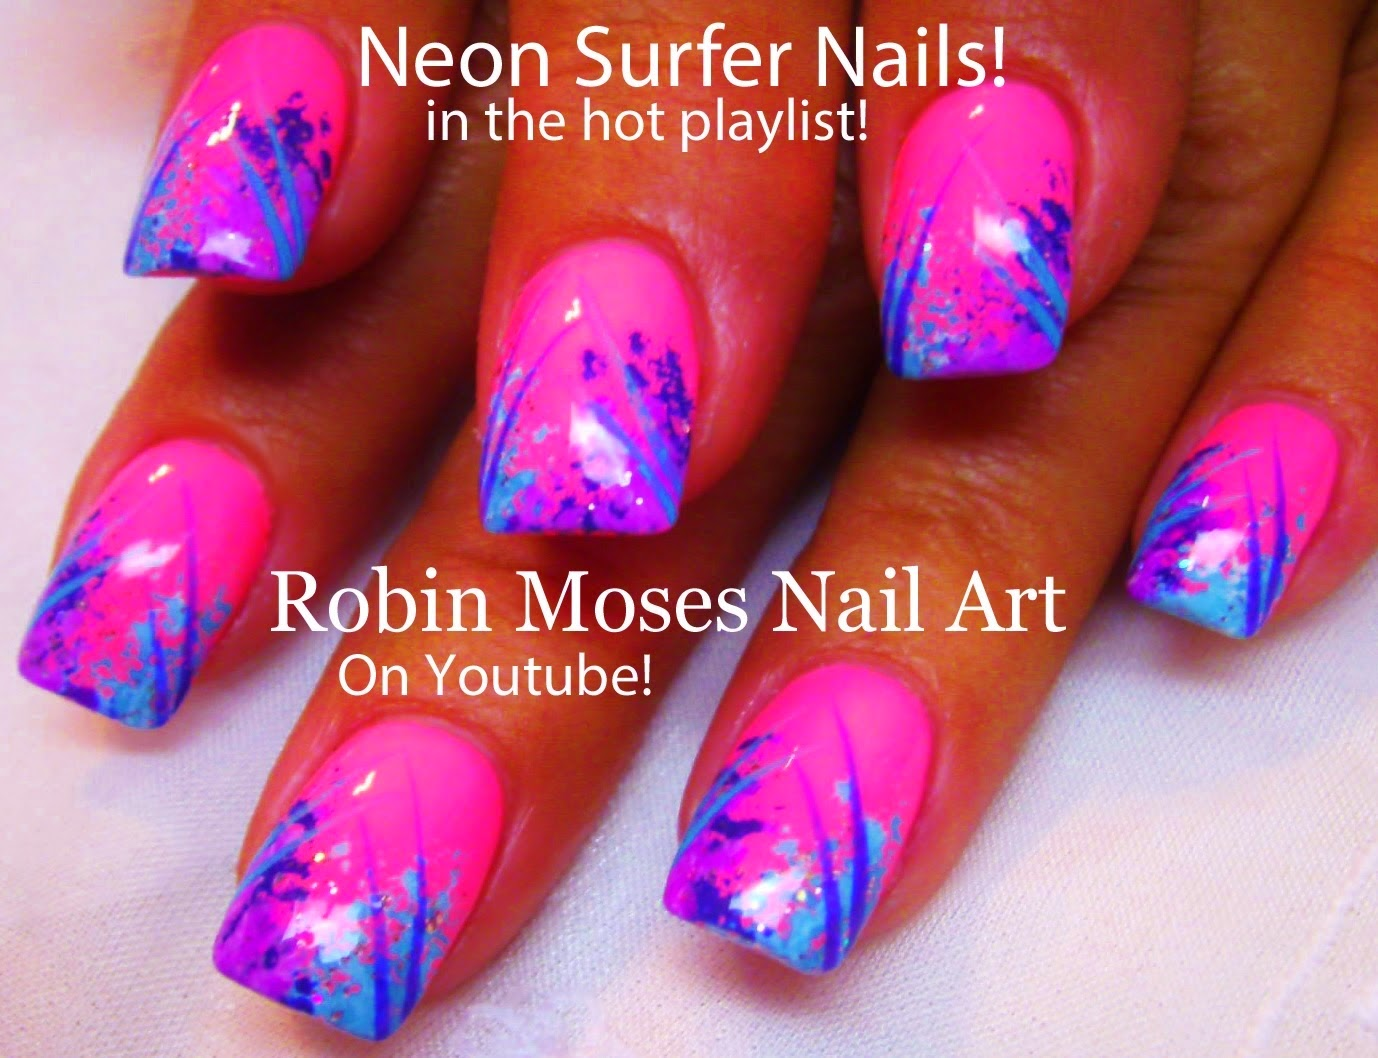 Nail designs that are easy to do yourself choice image nail art robin moses nail art april 2015 friday april 24 2015 prinsesfo choice image solutioingenieria Choice Image